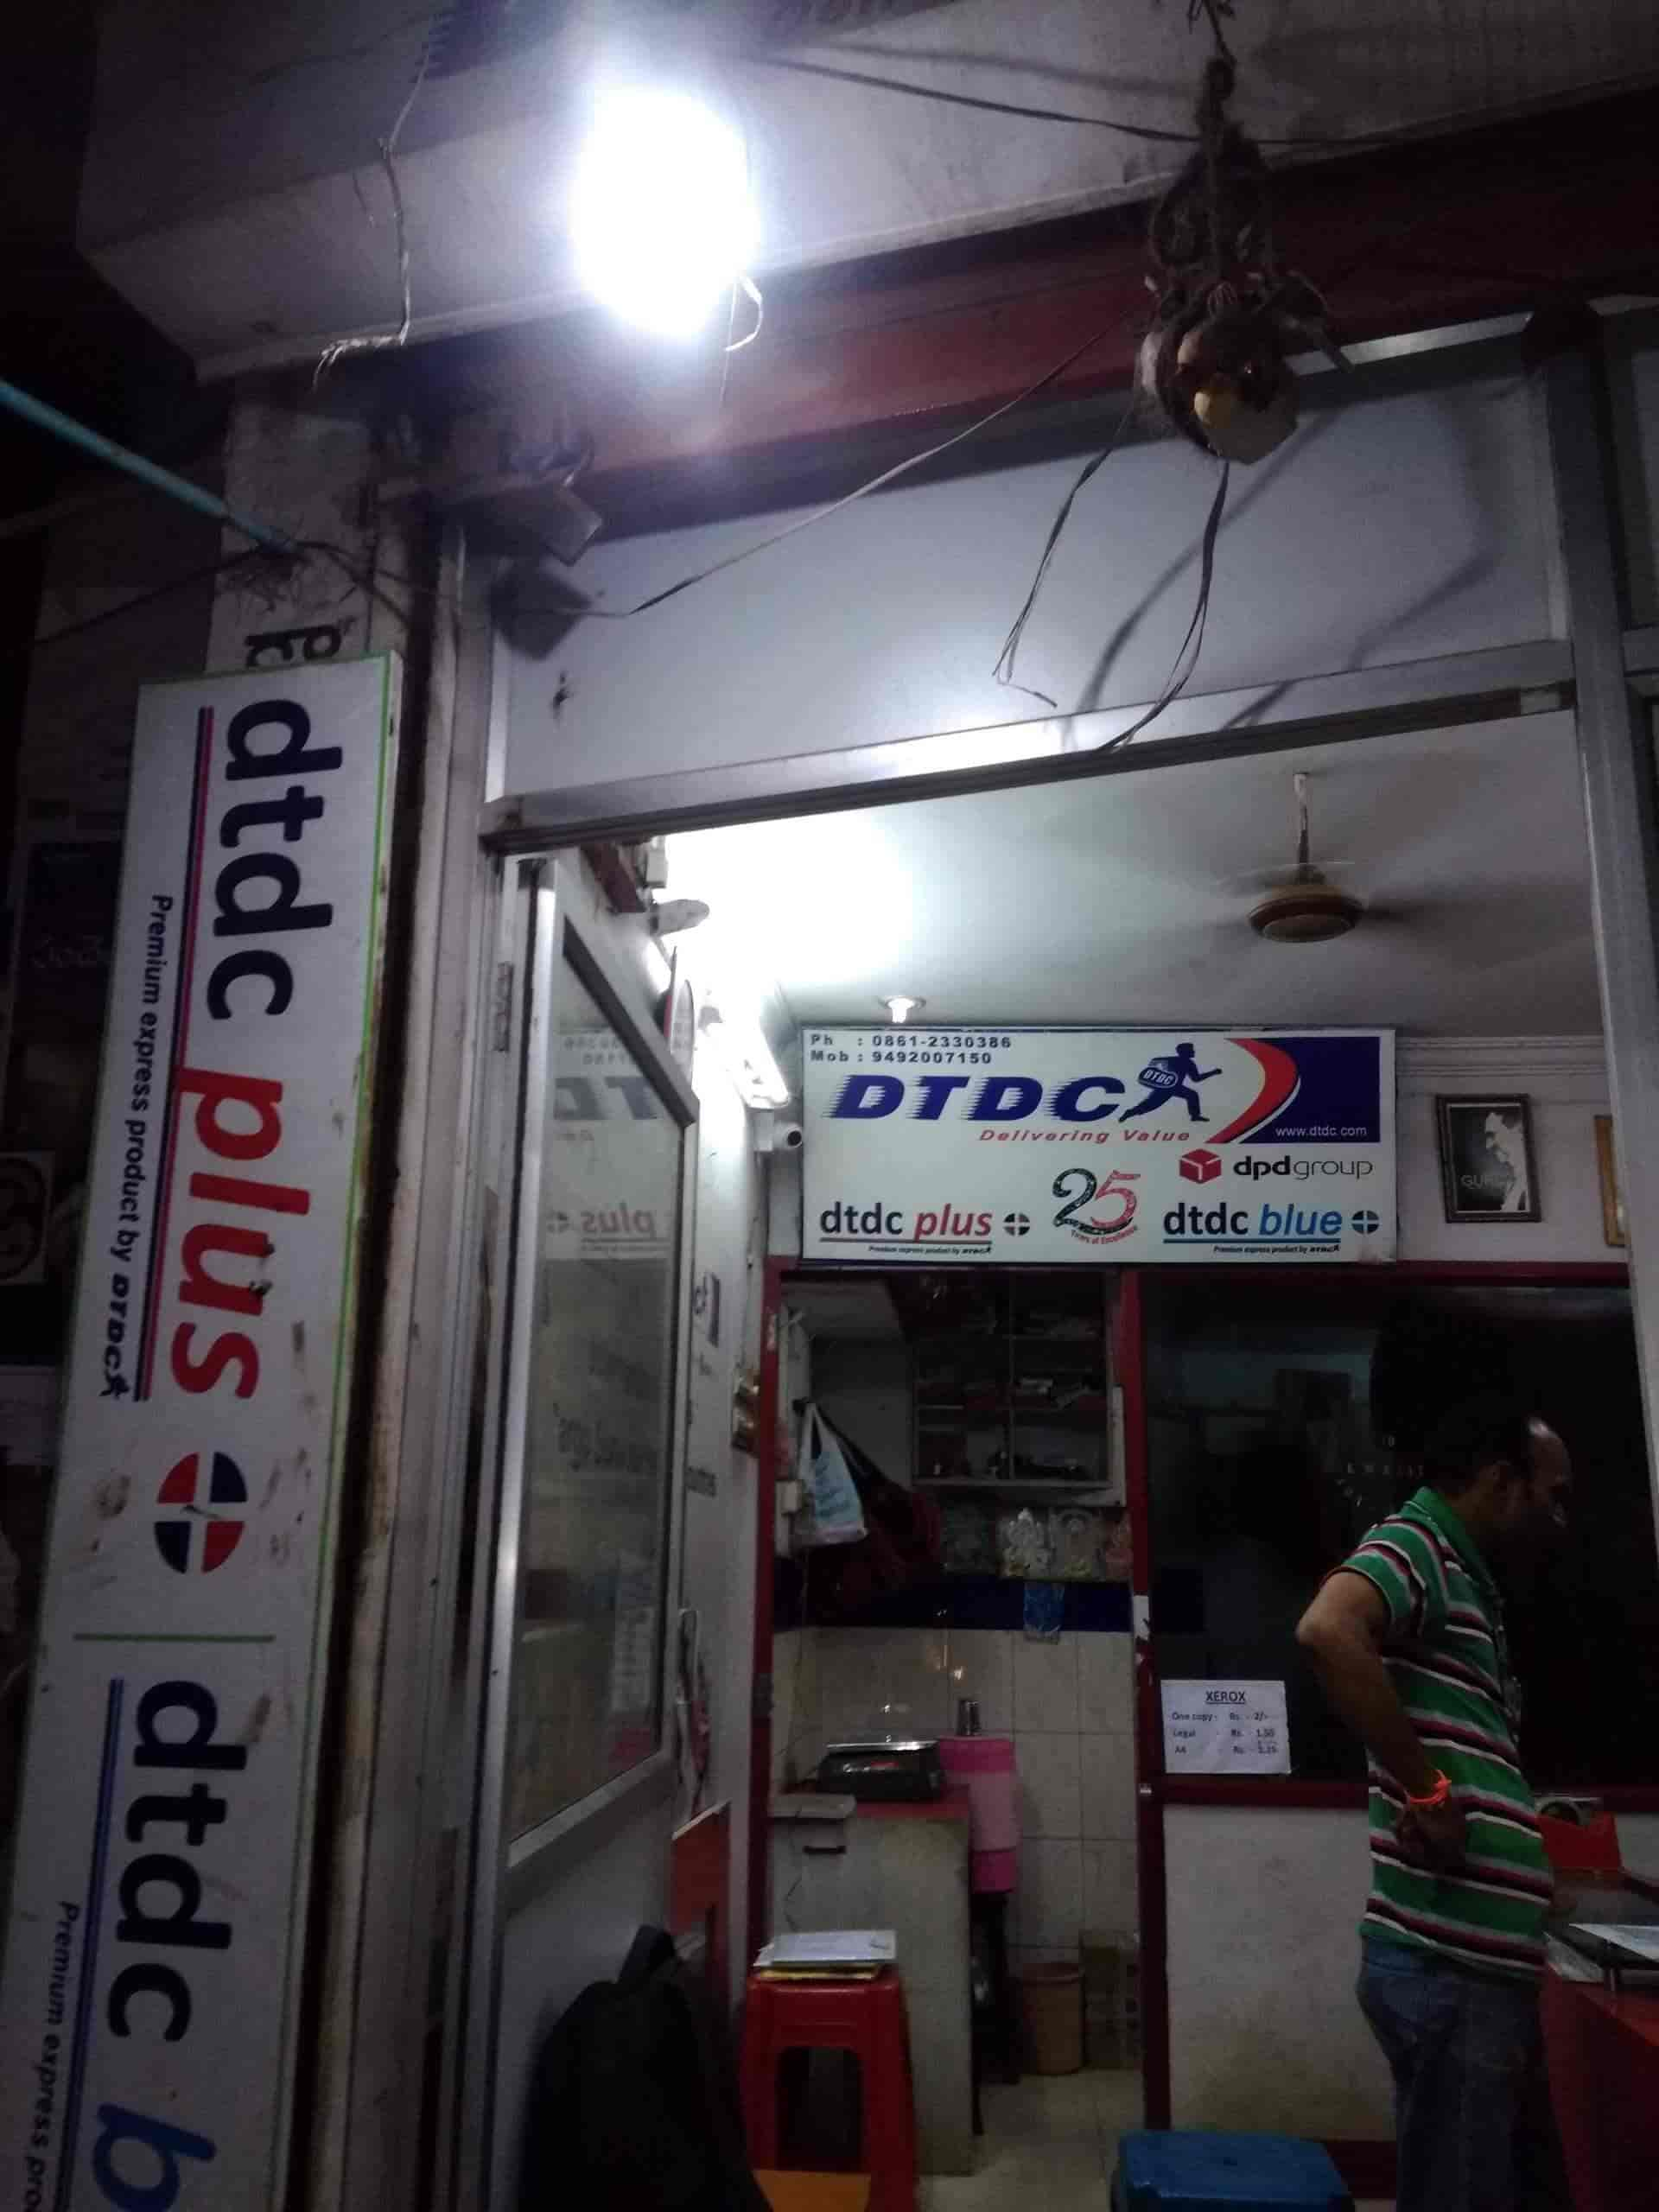 DTDC Express Ltd, Subedarpet - Courier Services in Nellore - Justdial